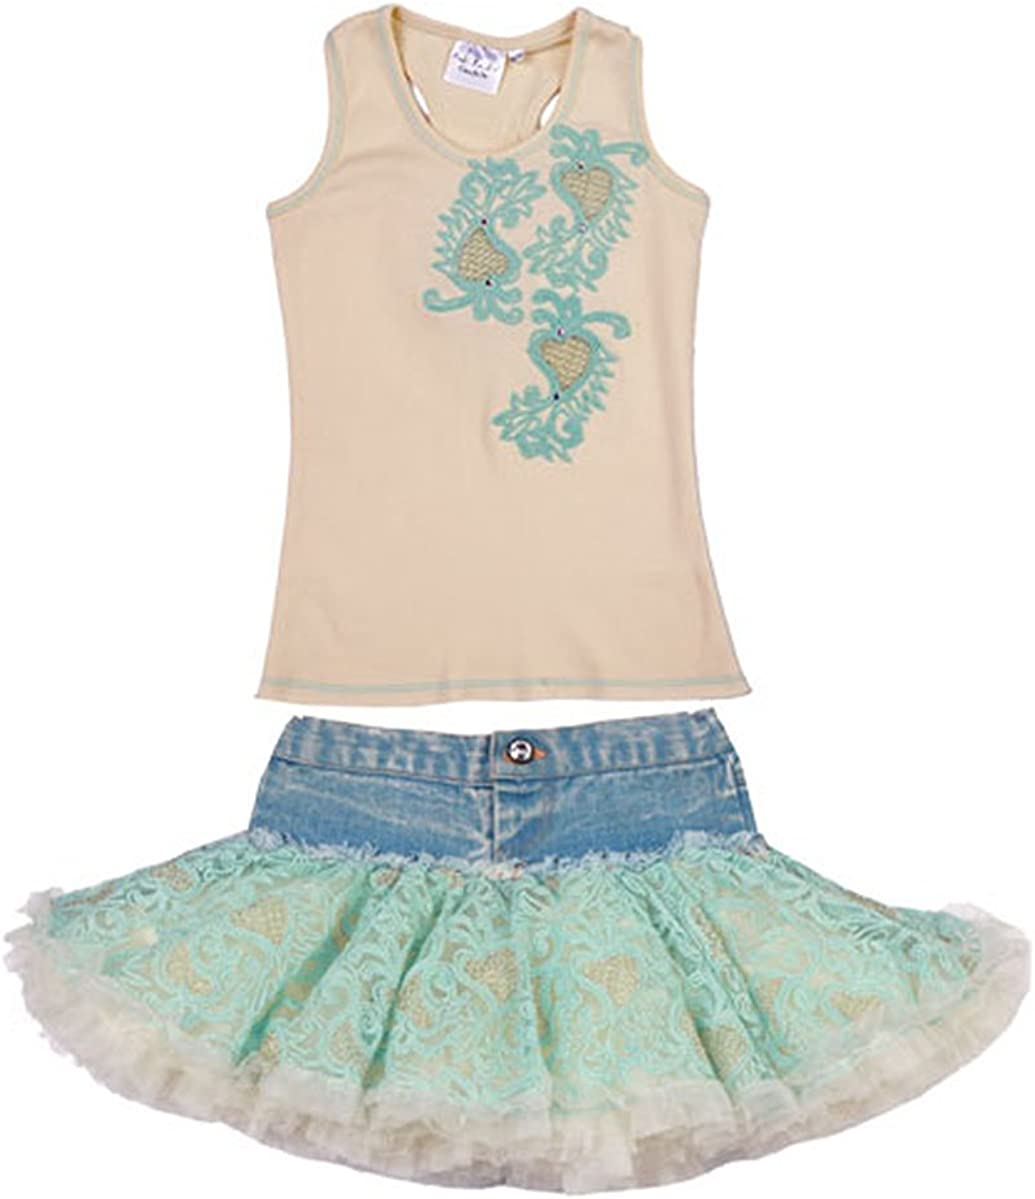 Couture Champagne /& Ice Blue Denim Skirt Set Ooh la la